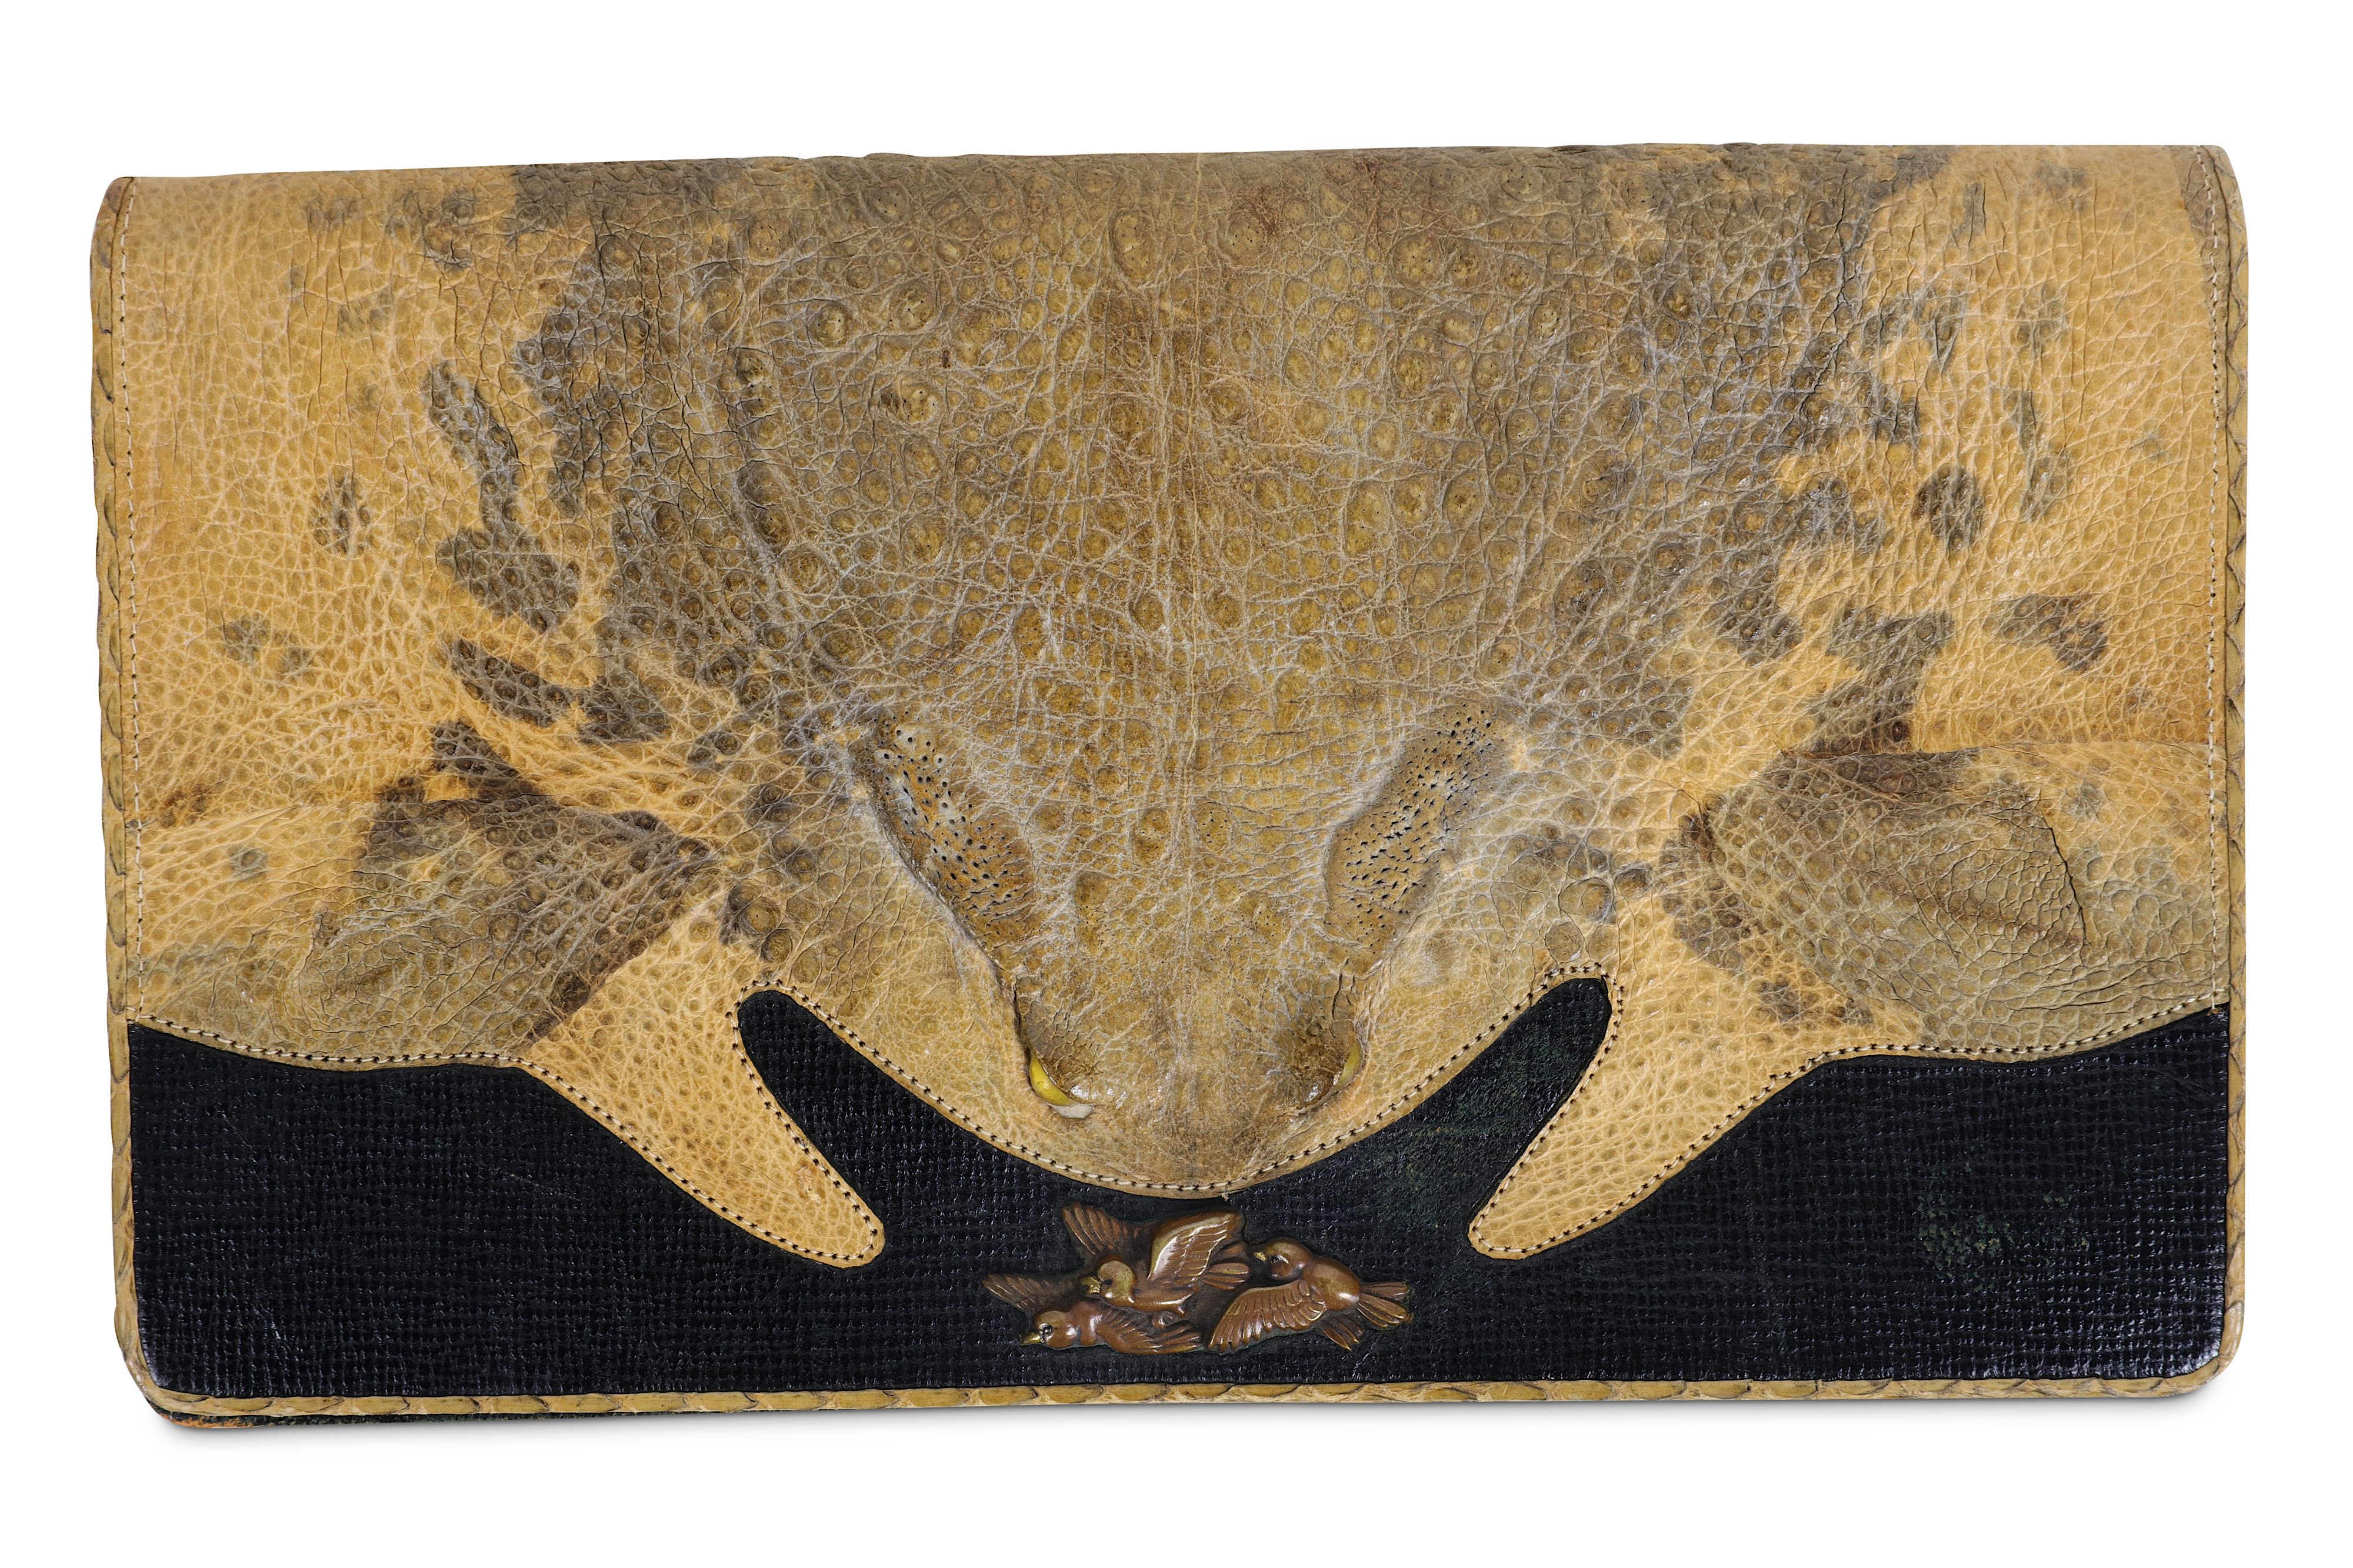 A 1930'S JAPANESE PURSE FORMED FROM A CANE TOAD - Image 2 of 3